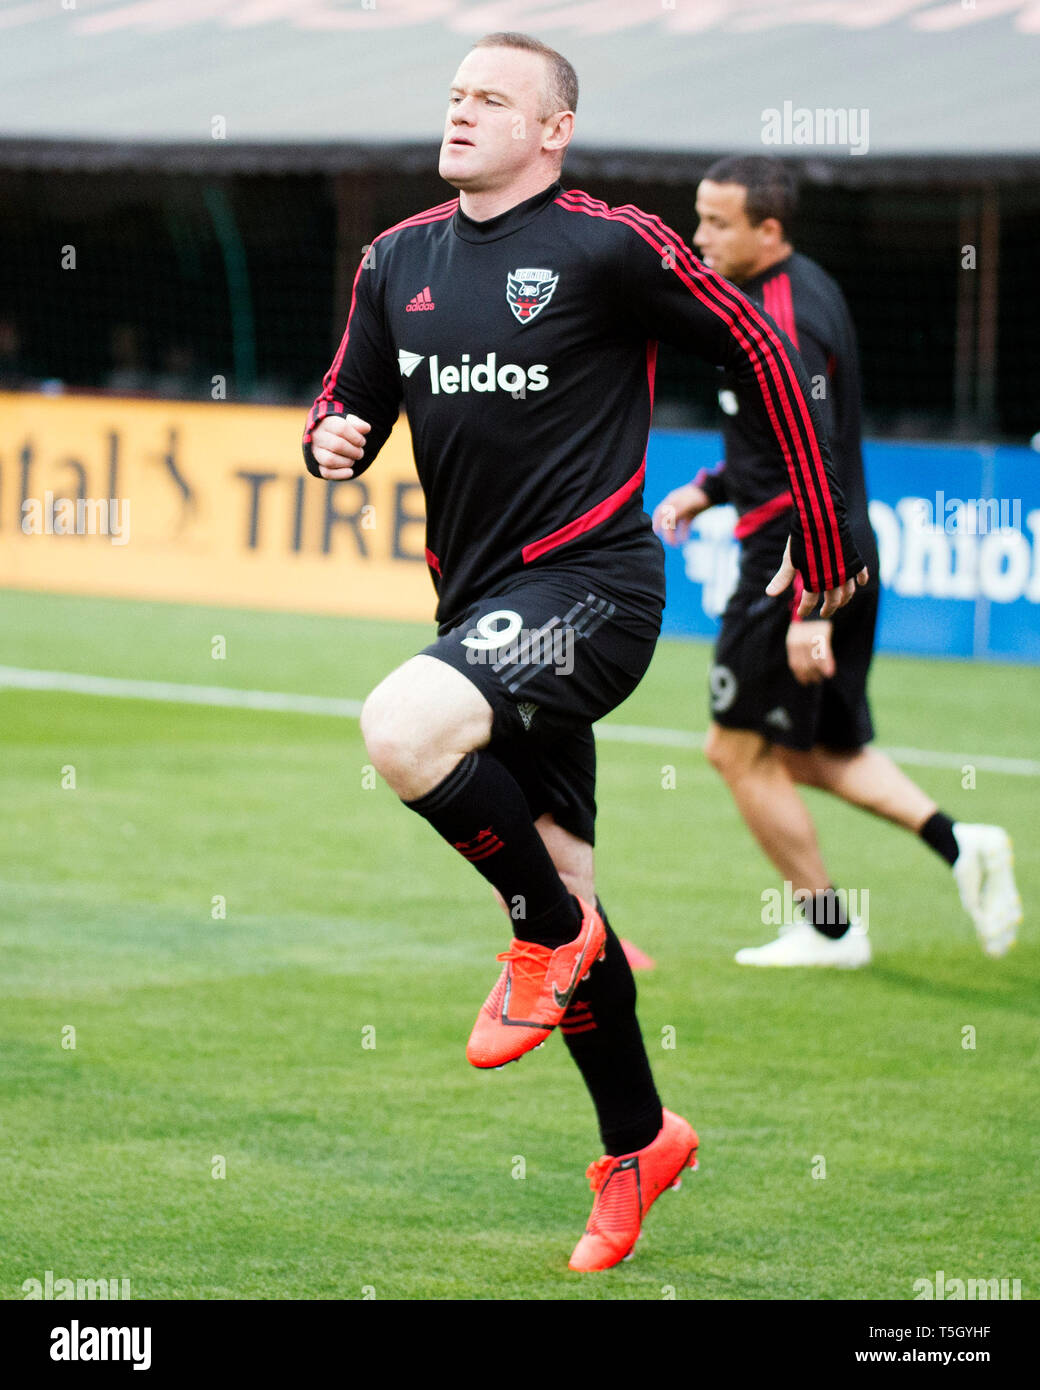 April 24, 2019: D.C. United forward Wayne Rooney (9) warms up before taking on Columbus Crew SC in their game in Columbus, OH, USA. Brent Clark/Alamy - Stock Image